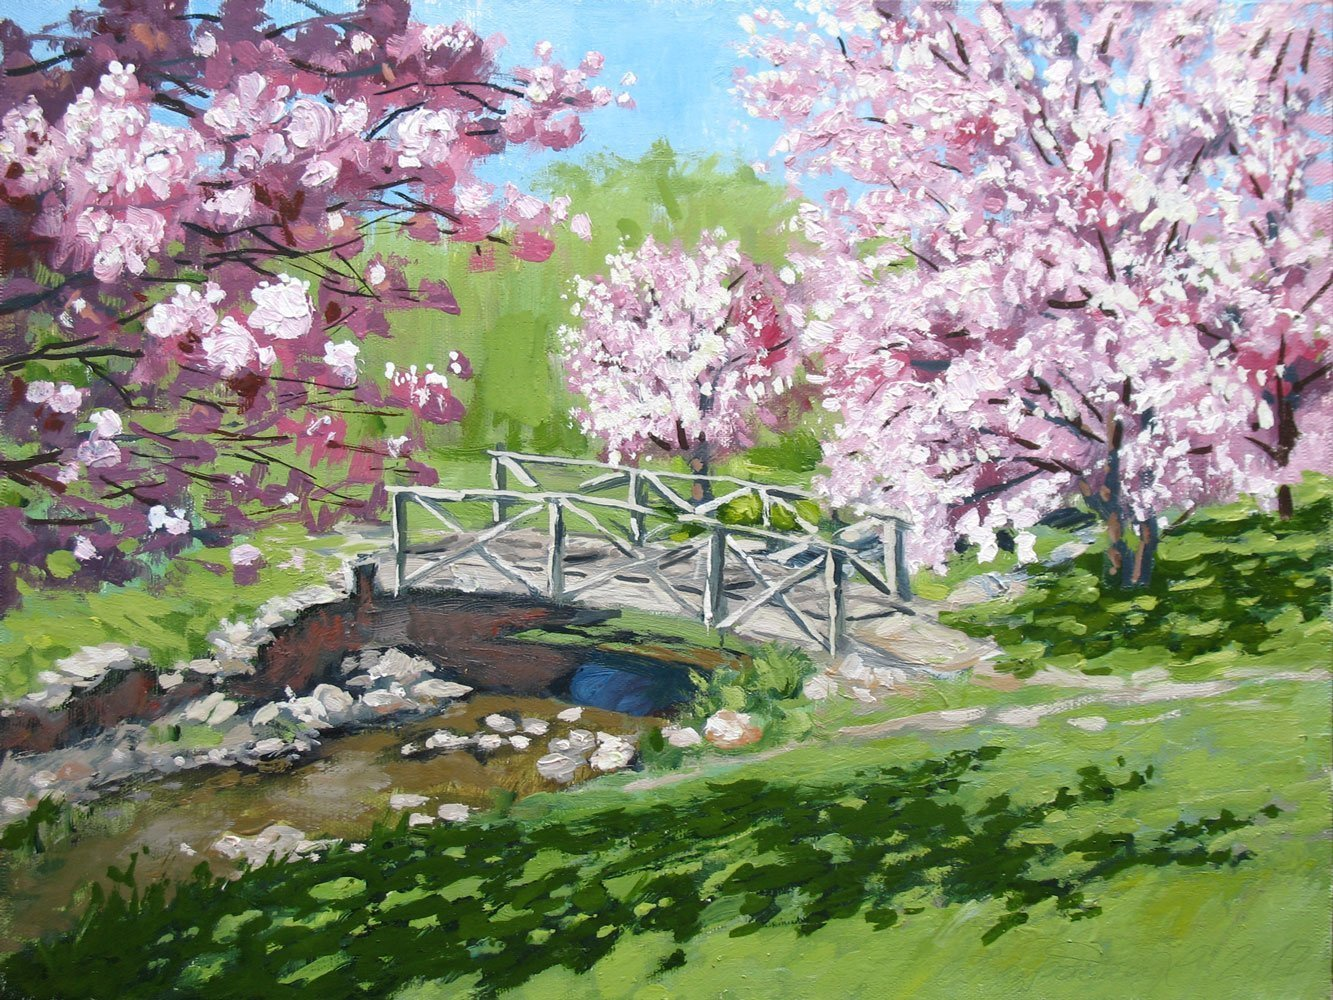 Alexander Bezrodnykh; Bridge Apple Trees, 2017, Original Painting Oil, 40 x 30 cm. Artwork description: 241 Bridge, Apple Trees, Spring...